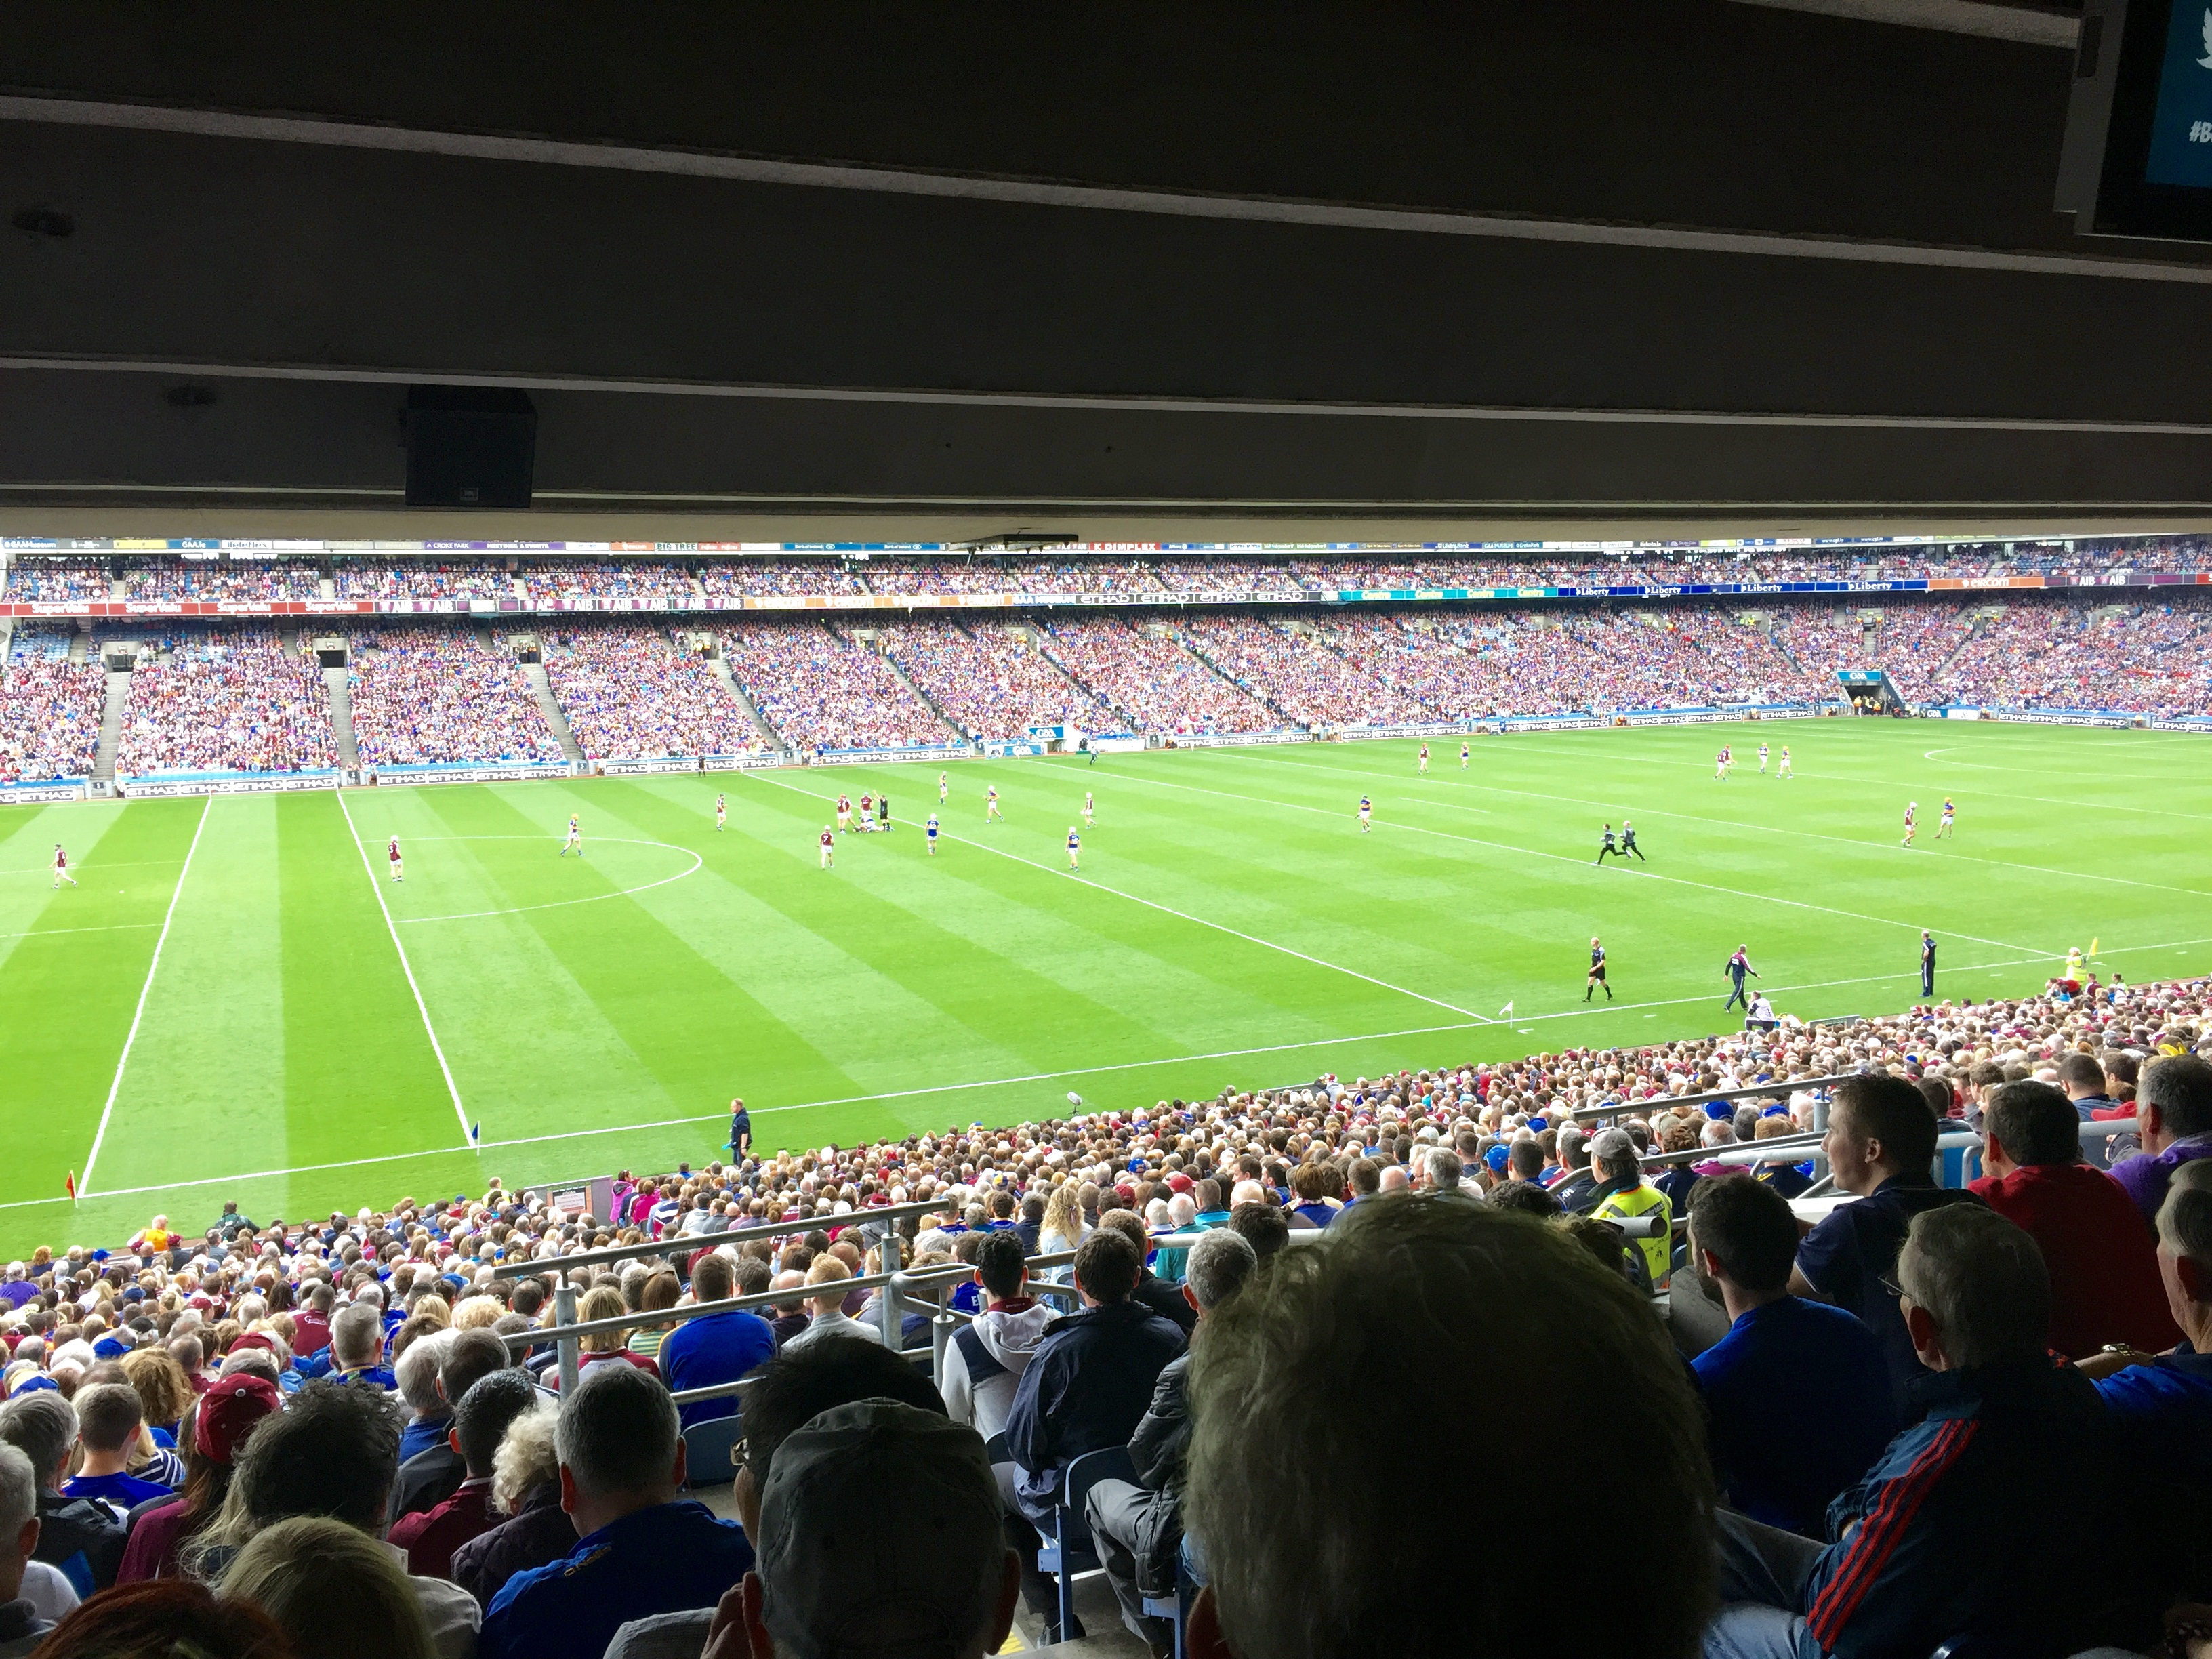 Image from a GAA Hurling match at Croke Park, Dublin